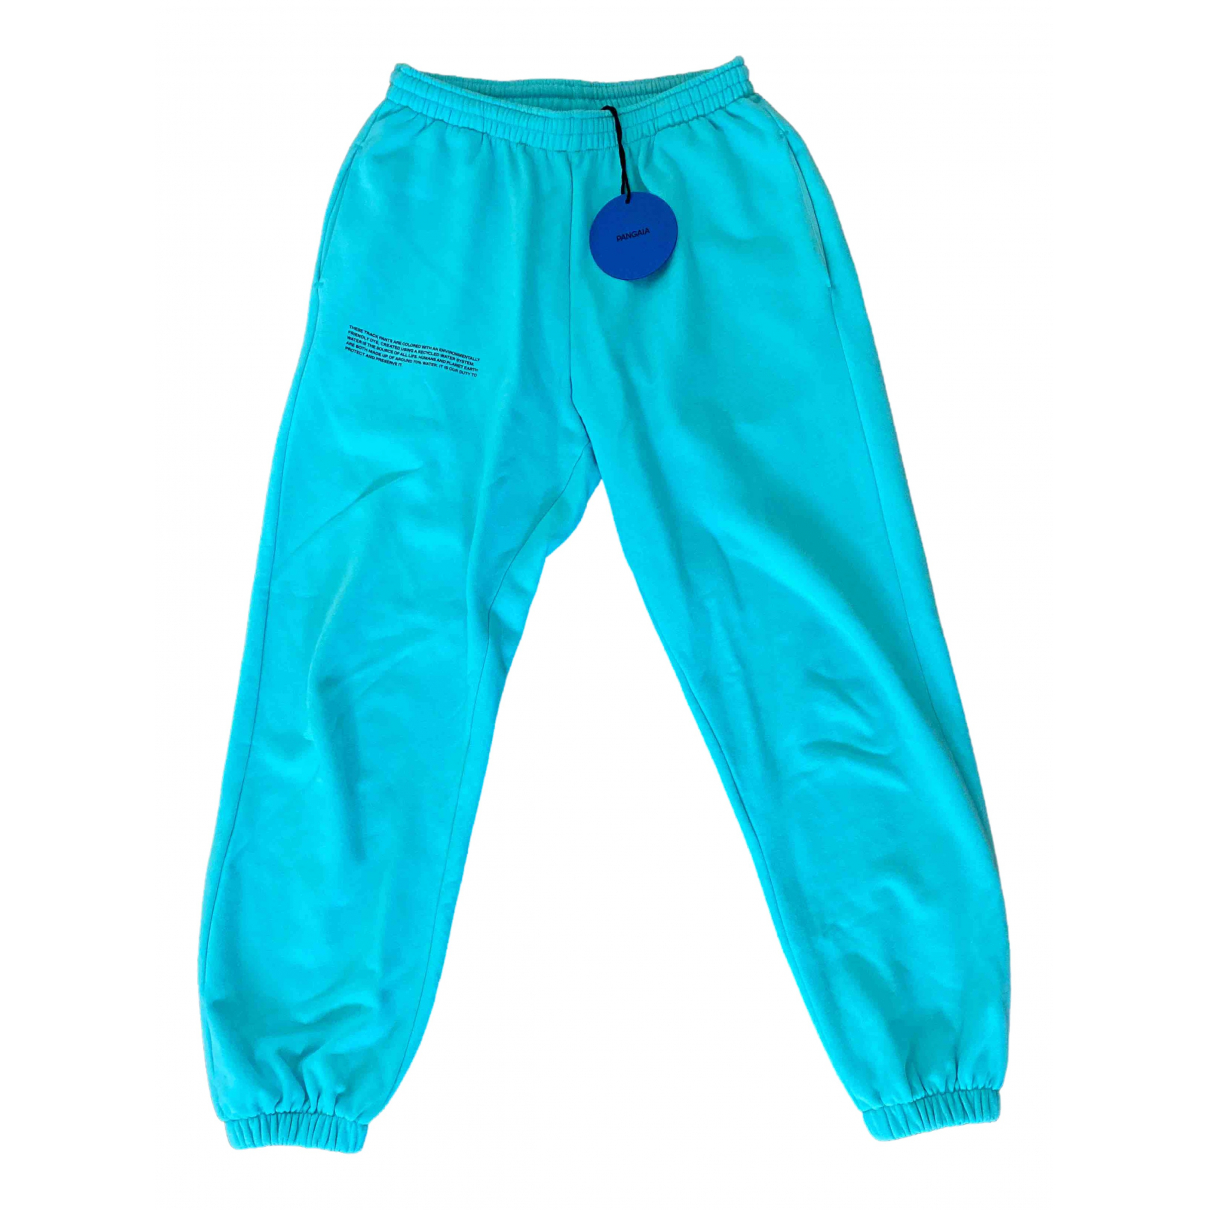 The Pangaia \N Turquoise Cotton Trousers for Women XS International